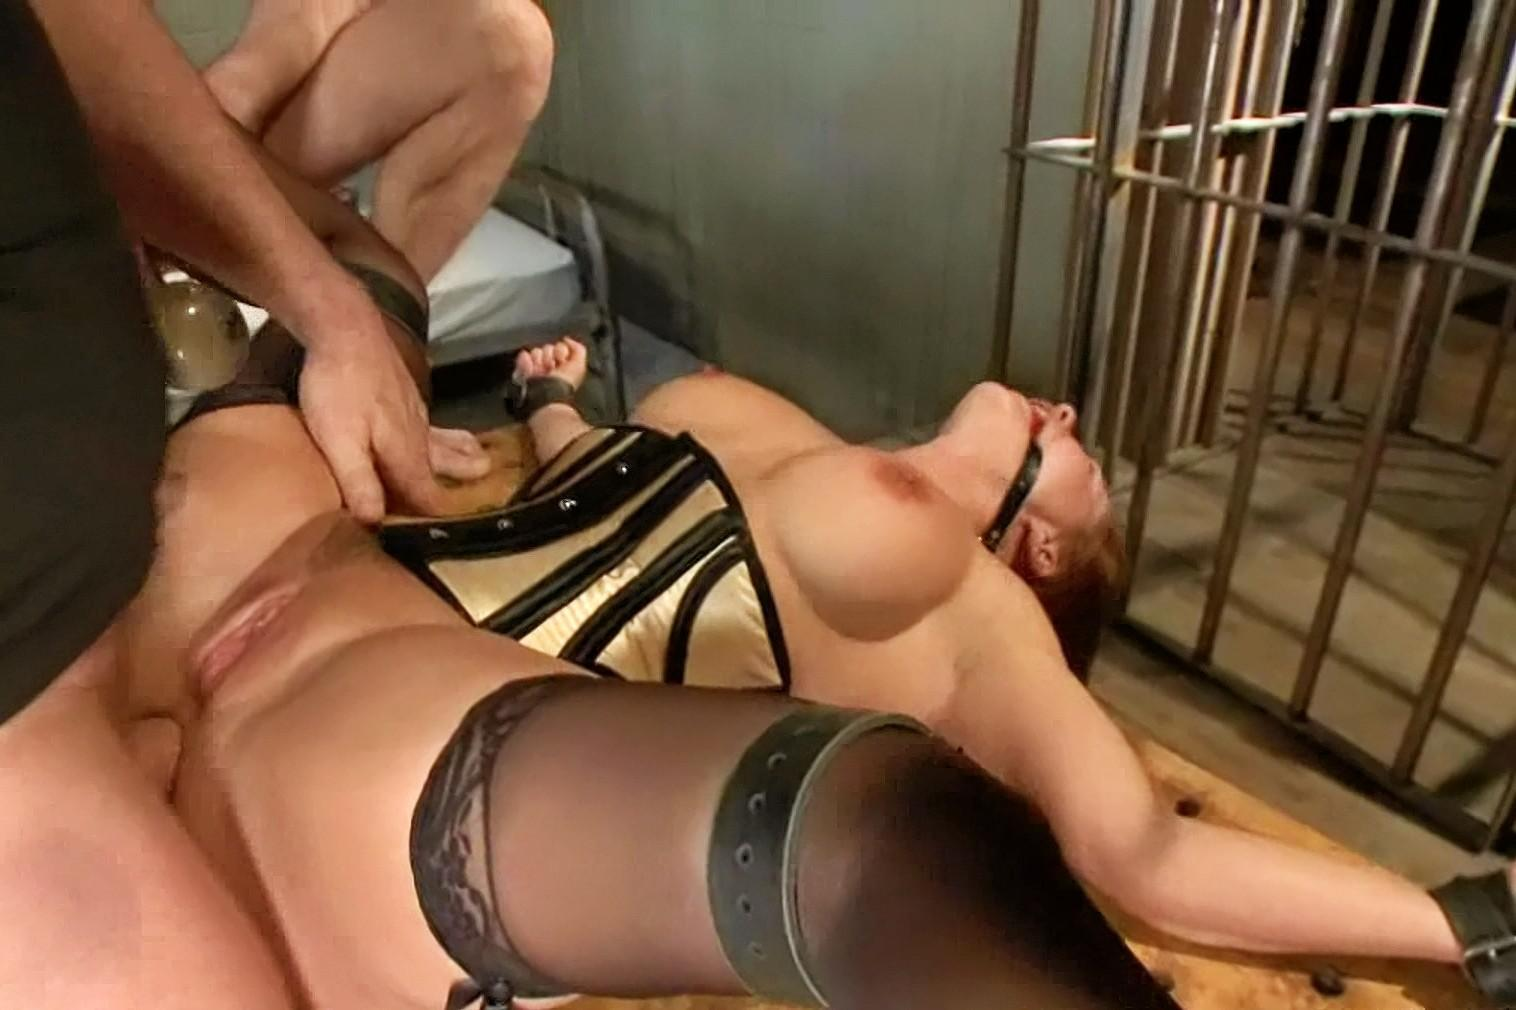 Pictures of kinky sex positions sex scene